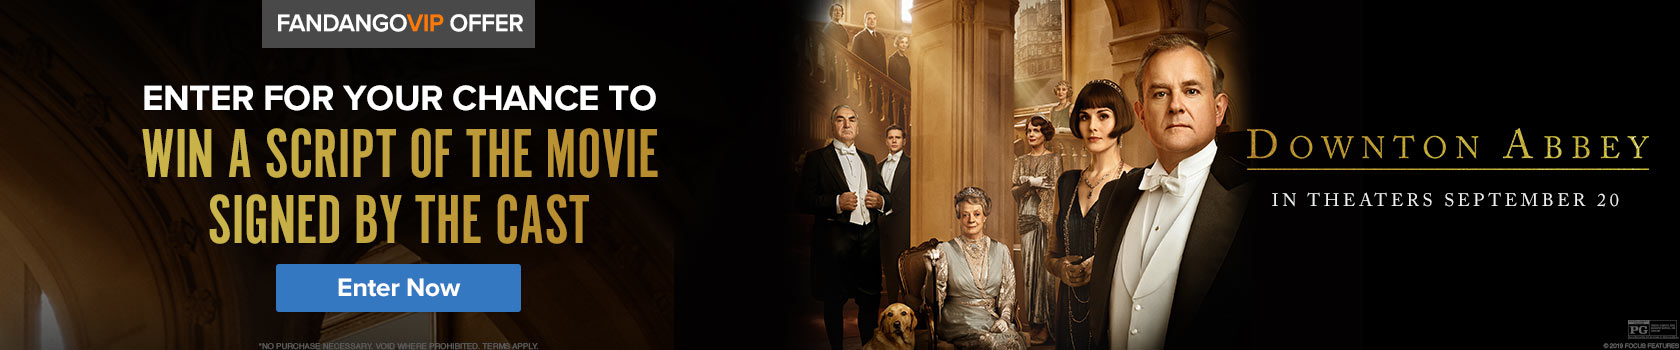 1680x350 'Downton Abbey' Sweepstakes - Enter for your chance to win a script of the movie signed by